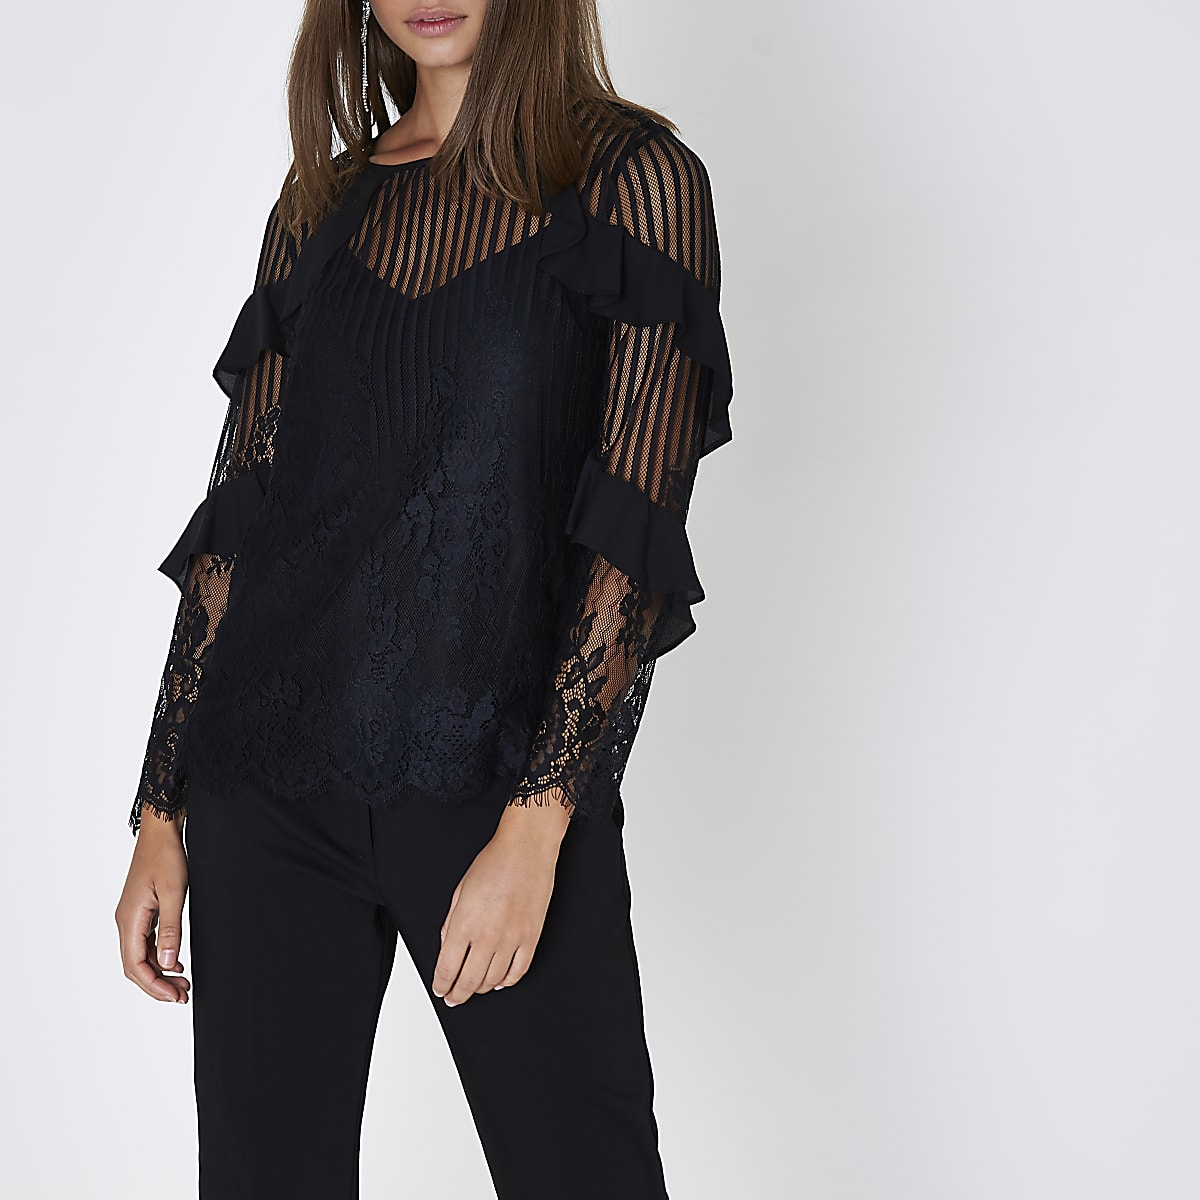 Black lace mesh long sleeve top